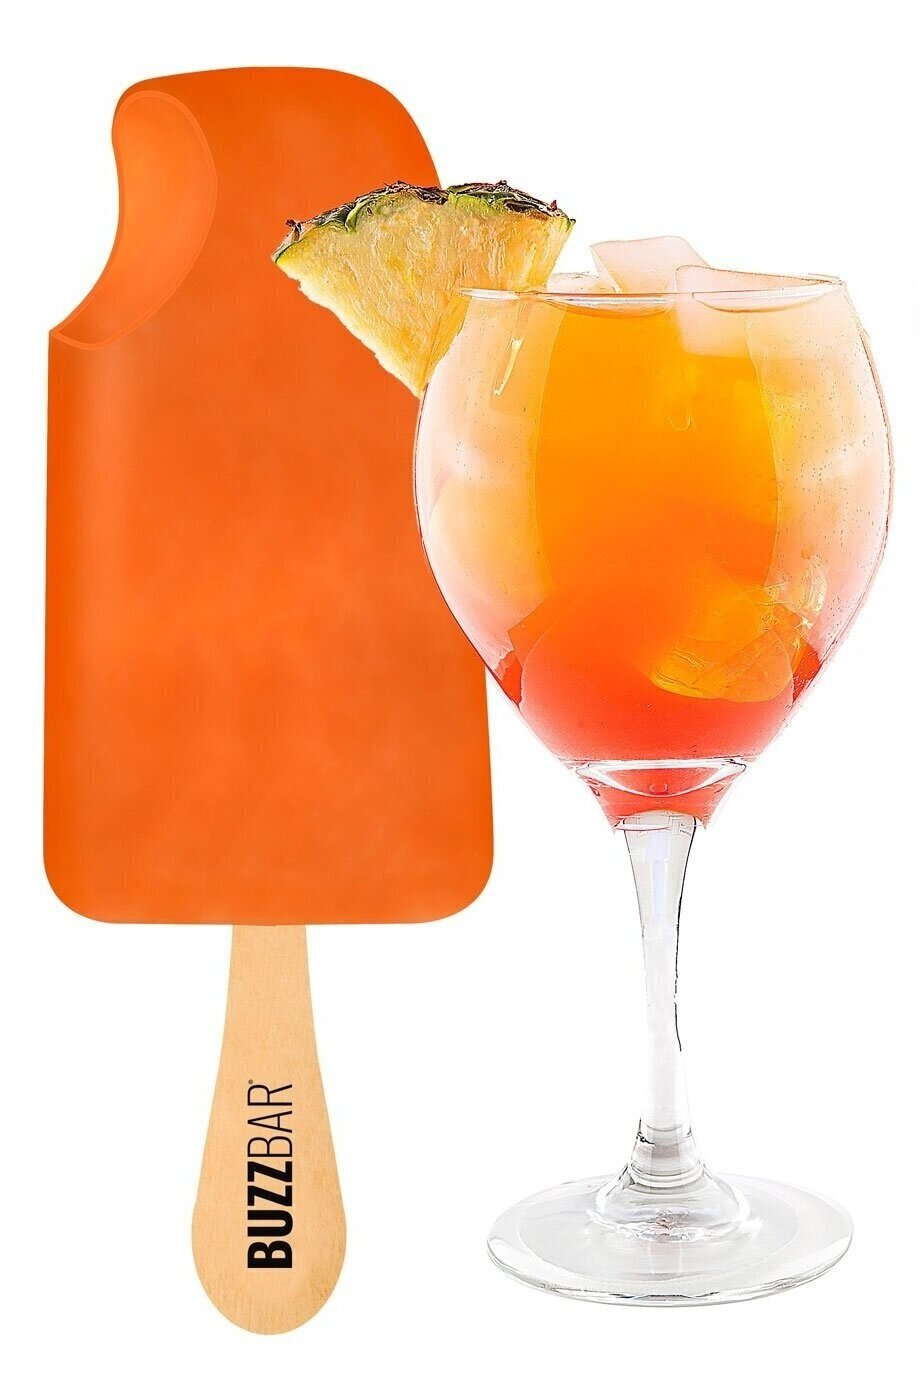 Pineapple Buzz - Taste the Islands on your tongue with a refreshing tropical fruit sorbet blended with spiced rum. Enjoy an umbrella drink on a stick.